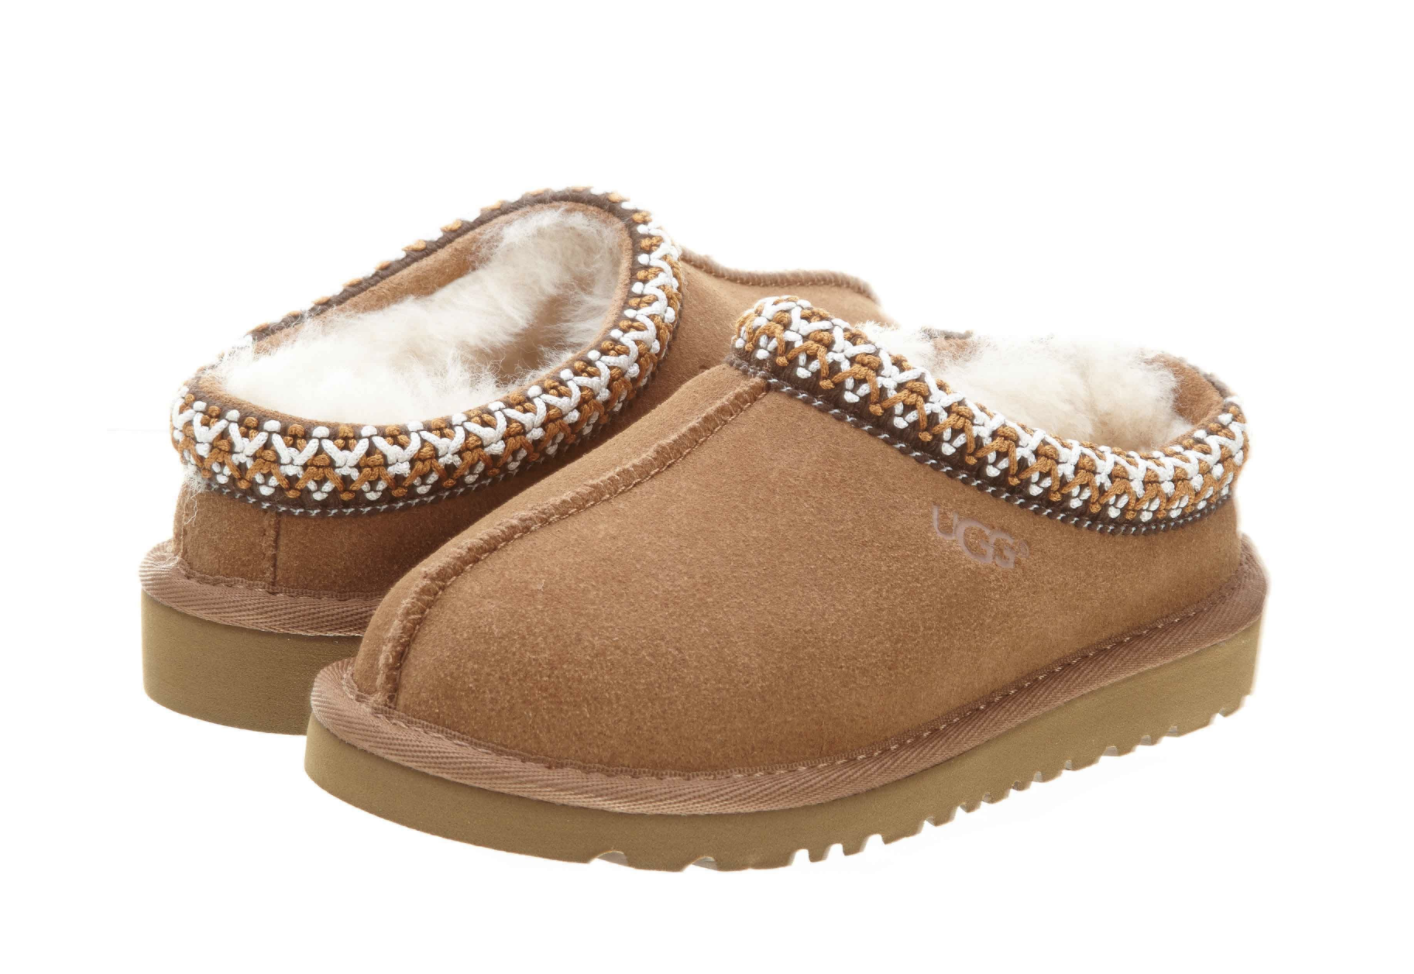 ce4ec5ef1da UGG Australia Kids Tasman 5252 Chestnut Brown SLIPPER Shoe Size 6